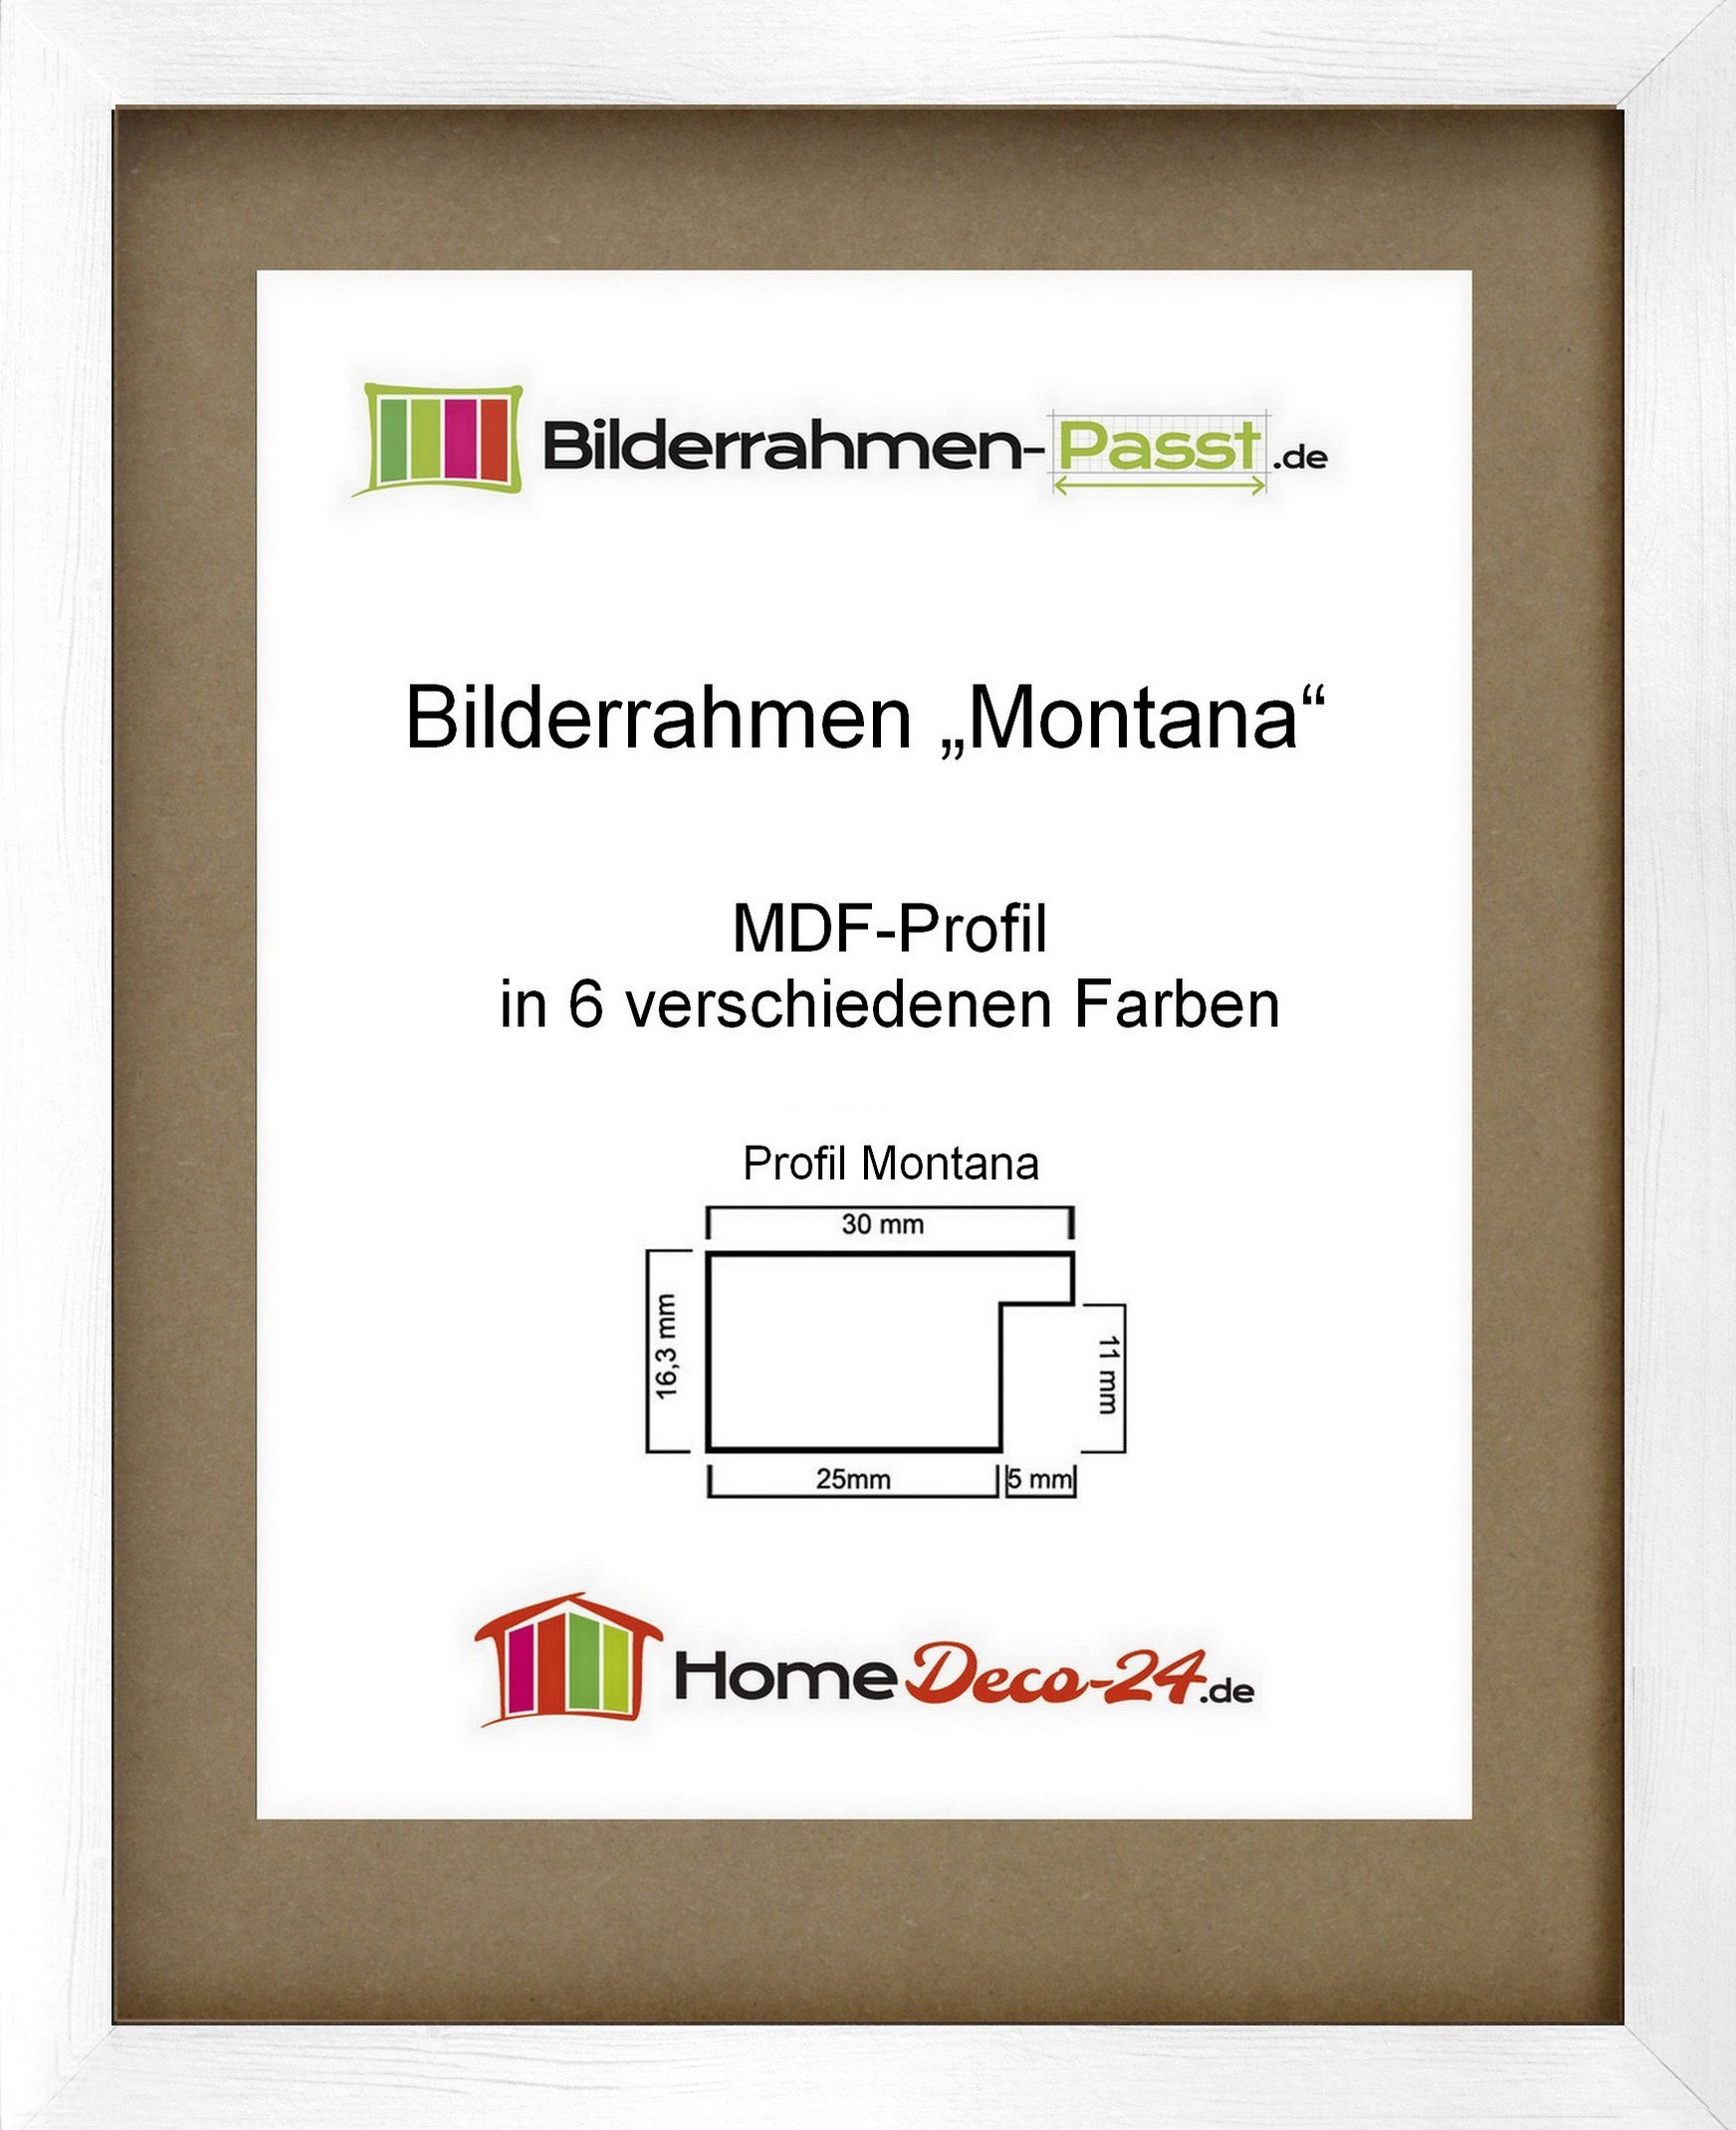 bilderrahmen montana acrylglas klar wahl farbe und gr e. Black Bedroom Furniture Sets. Home Design Ideas